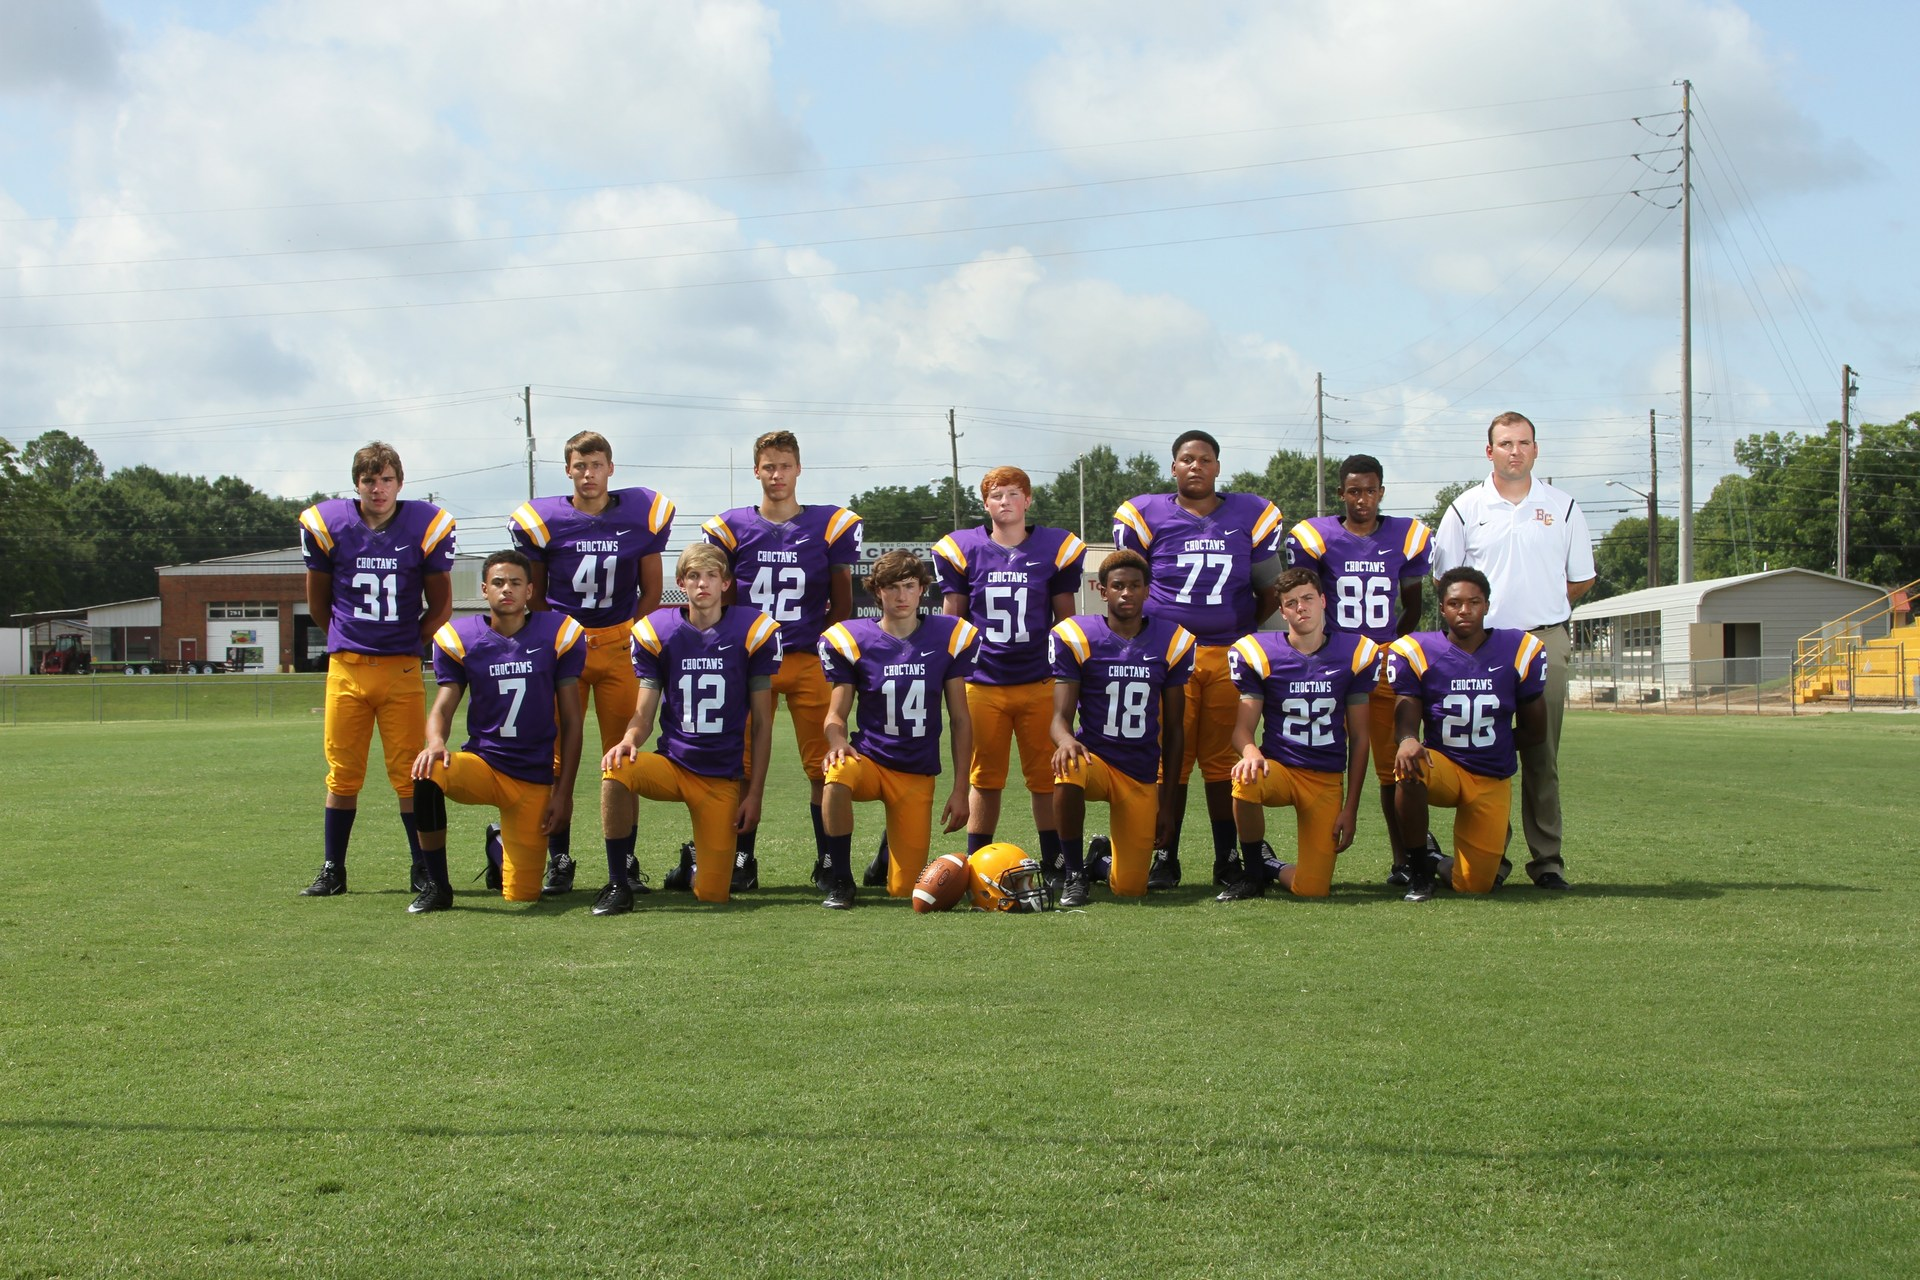 Bibb County High School Football players in purple and gold uniform